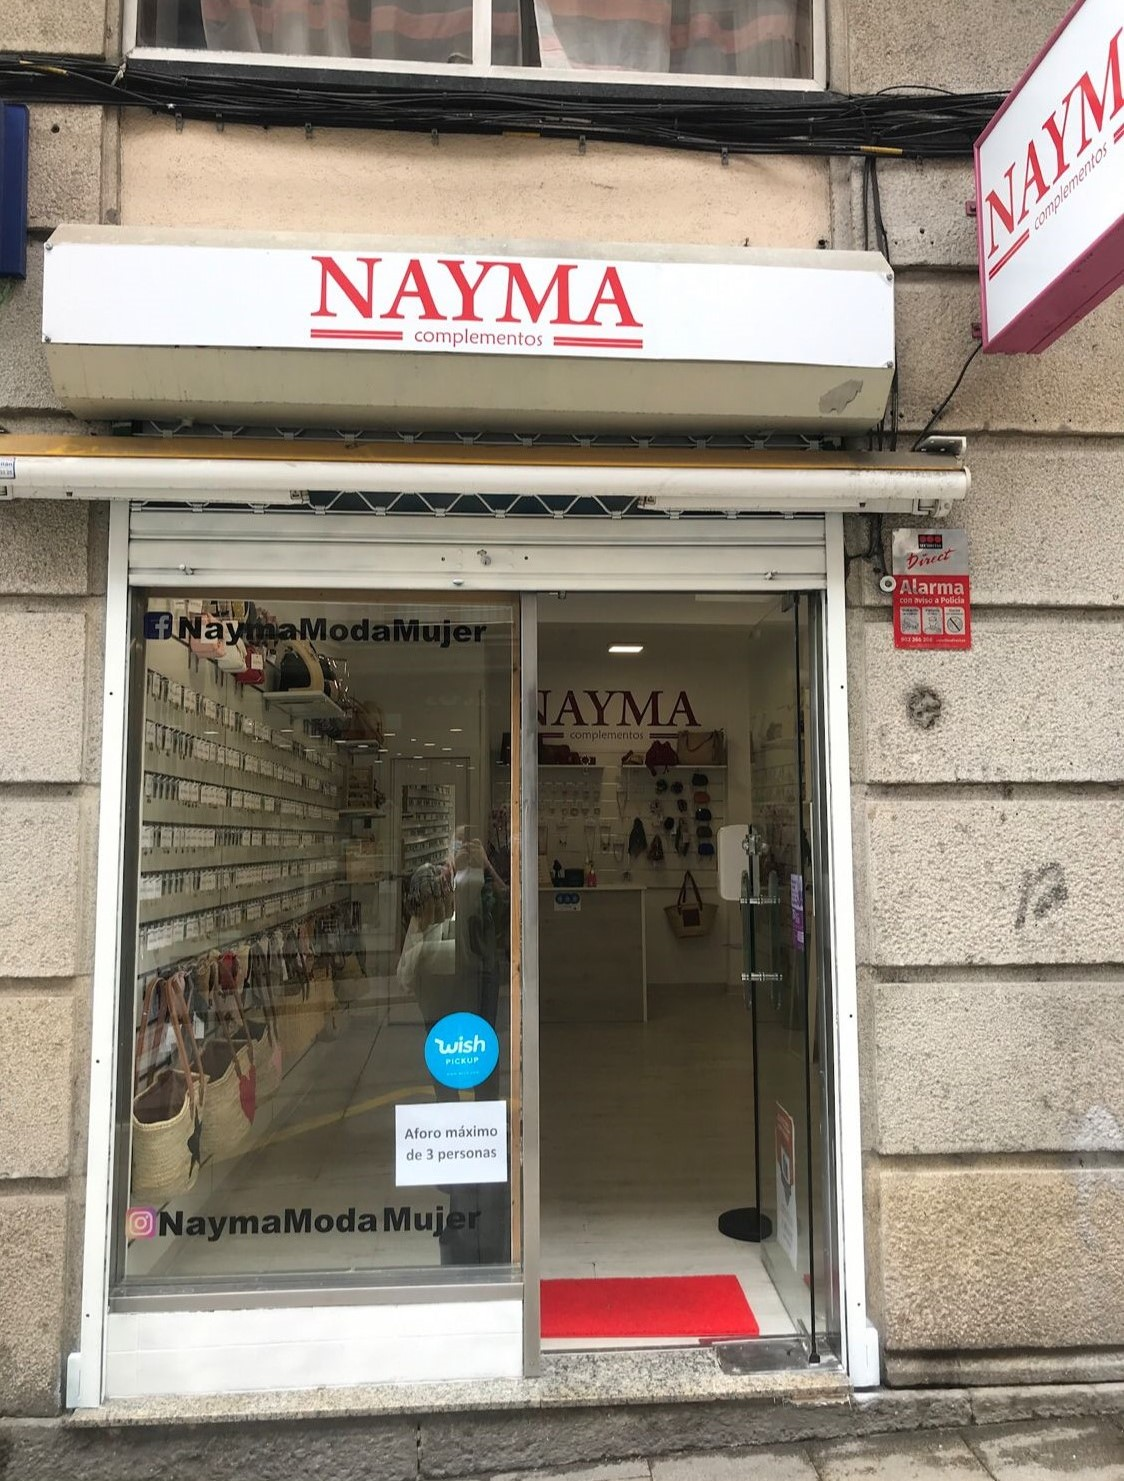 Nayma Complementos